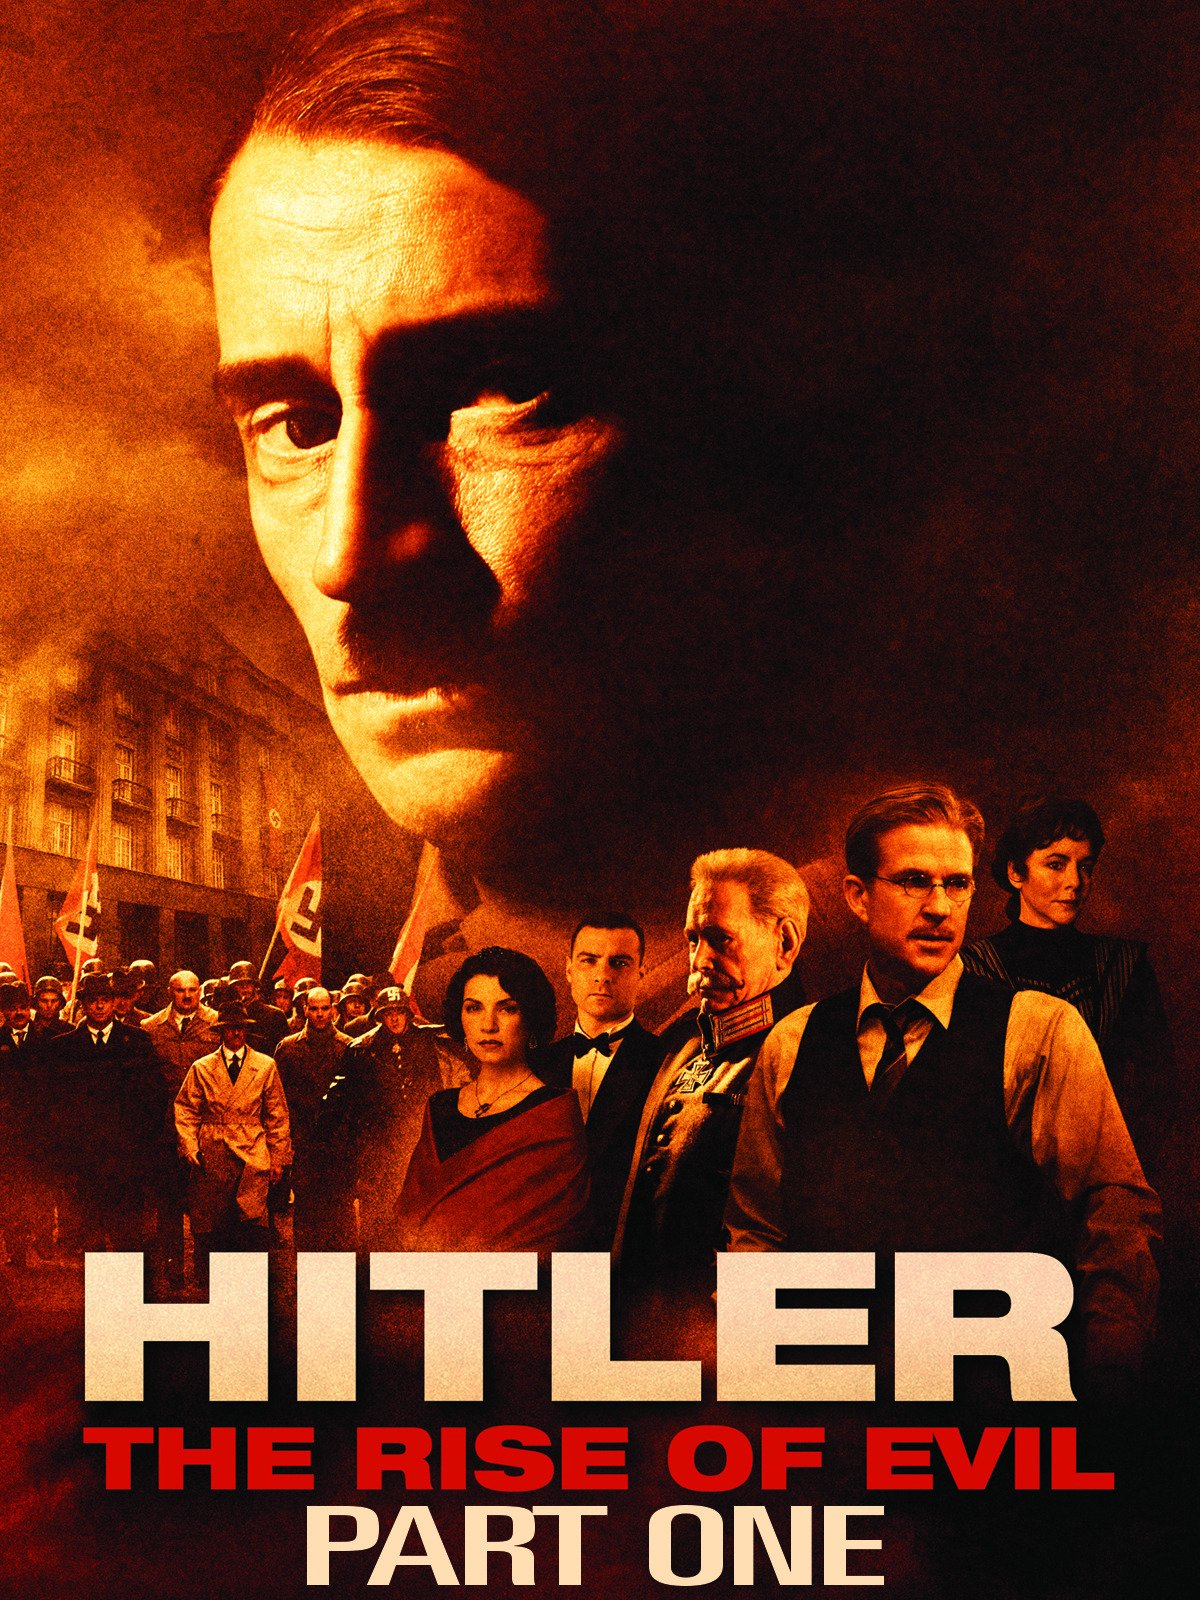 Watch Hitler: The Rise of Evil (Part 1) | Prime Video